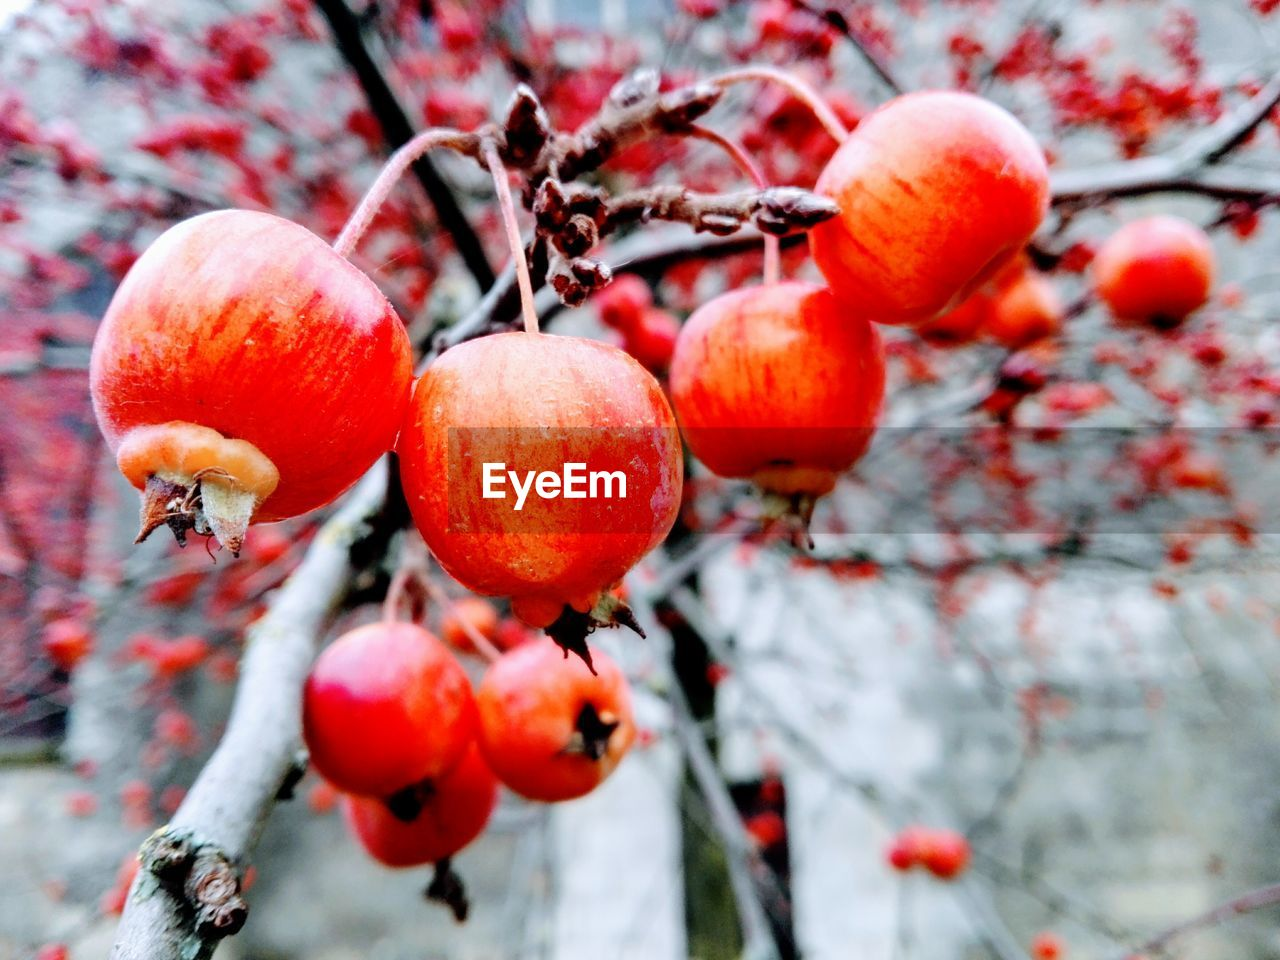 fruit, food and drink, tree, red, growth, nature, outdoors, growing, focus on foreground, beauty in nature, freshness, close-up, rose hip, no people, day, rowanberry, food, winter, branch, healthy eating, snow